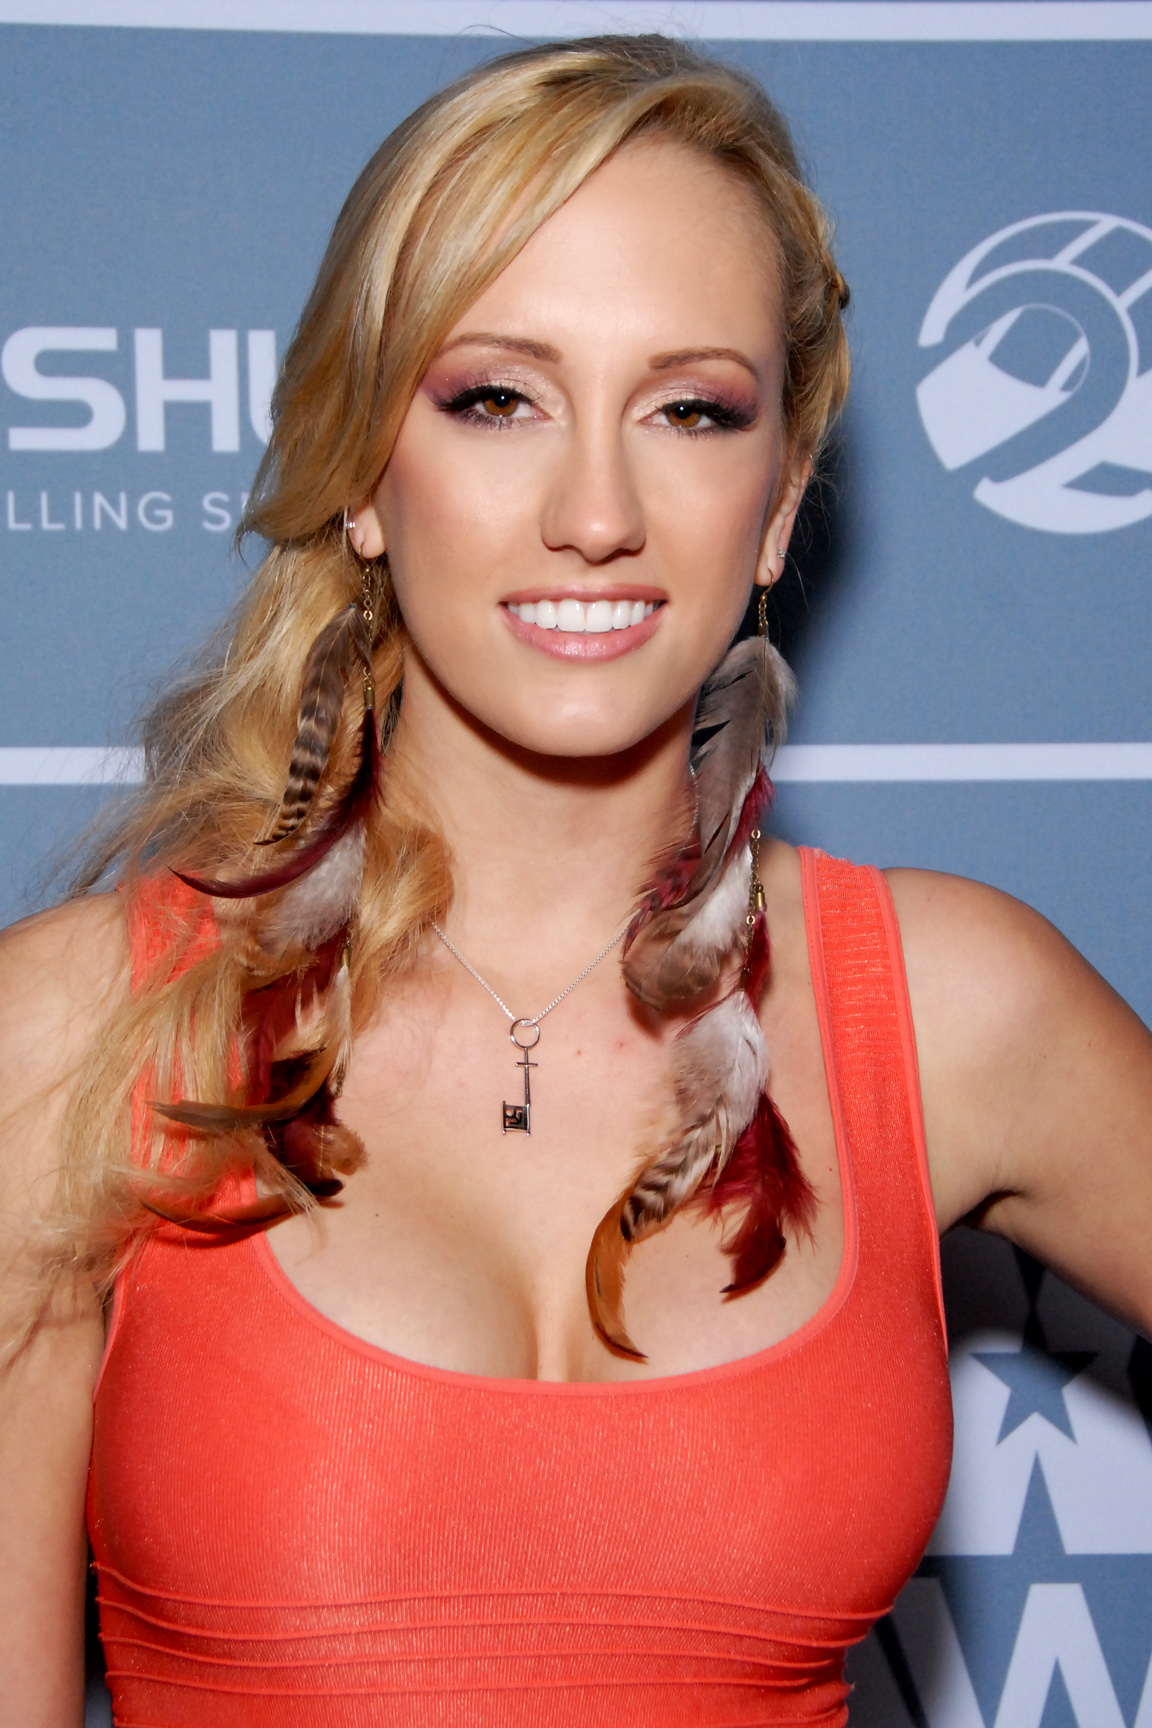 Images Brett Rossi naked (73 photos), Ass